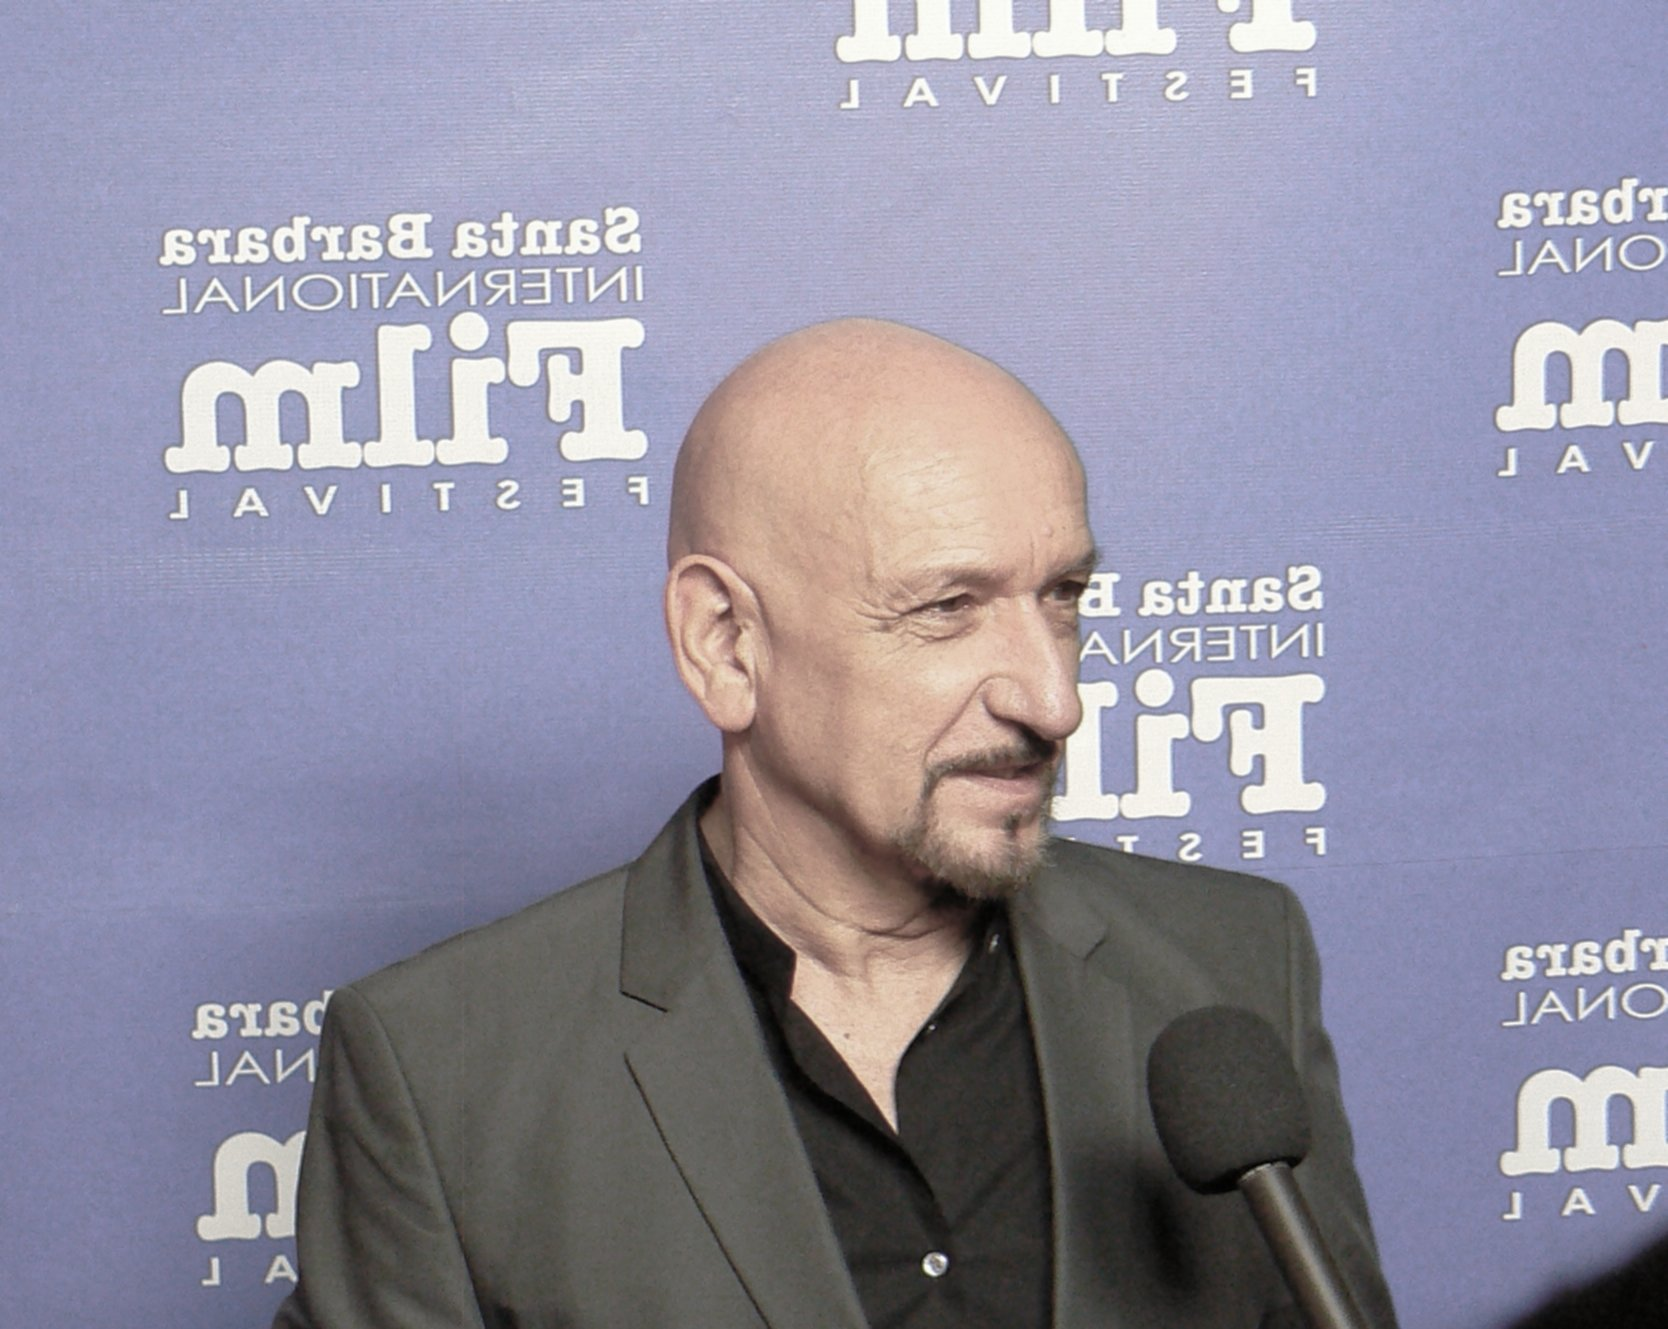 Ben Kingsley quotes and images